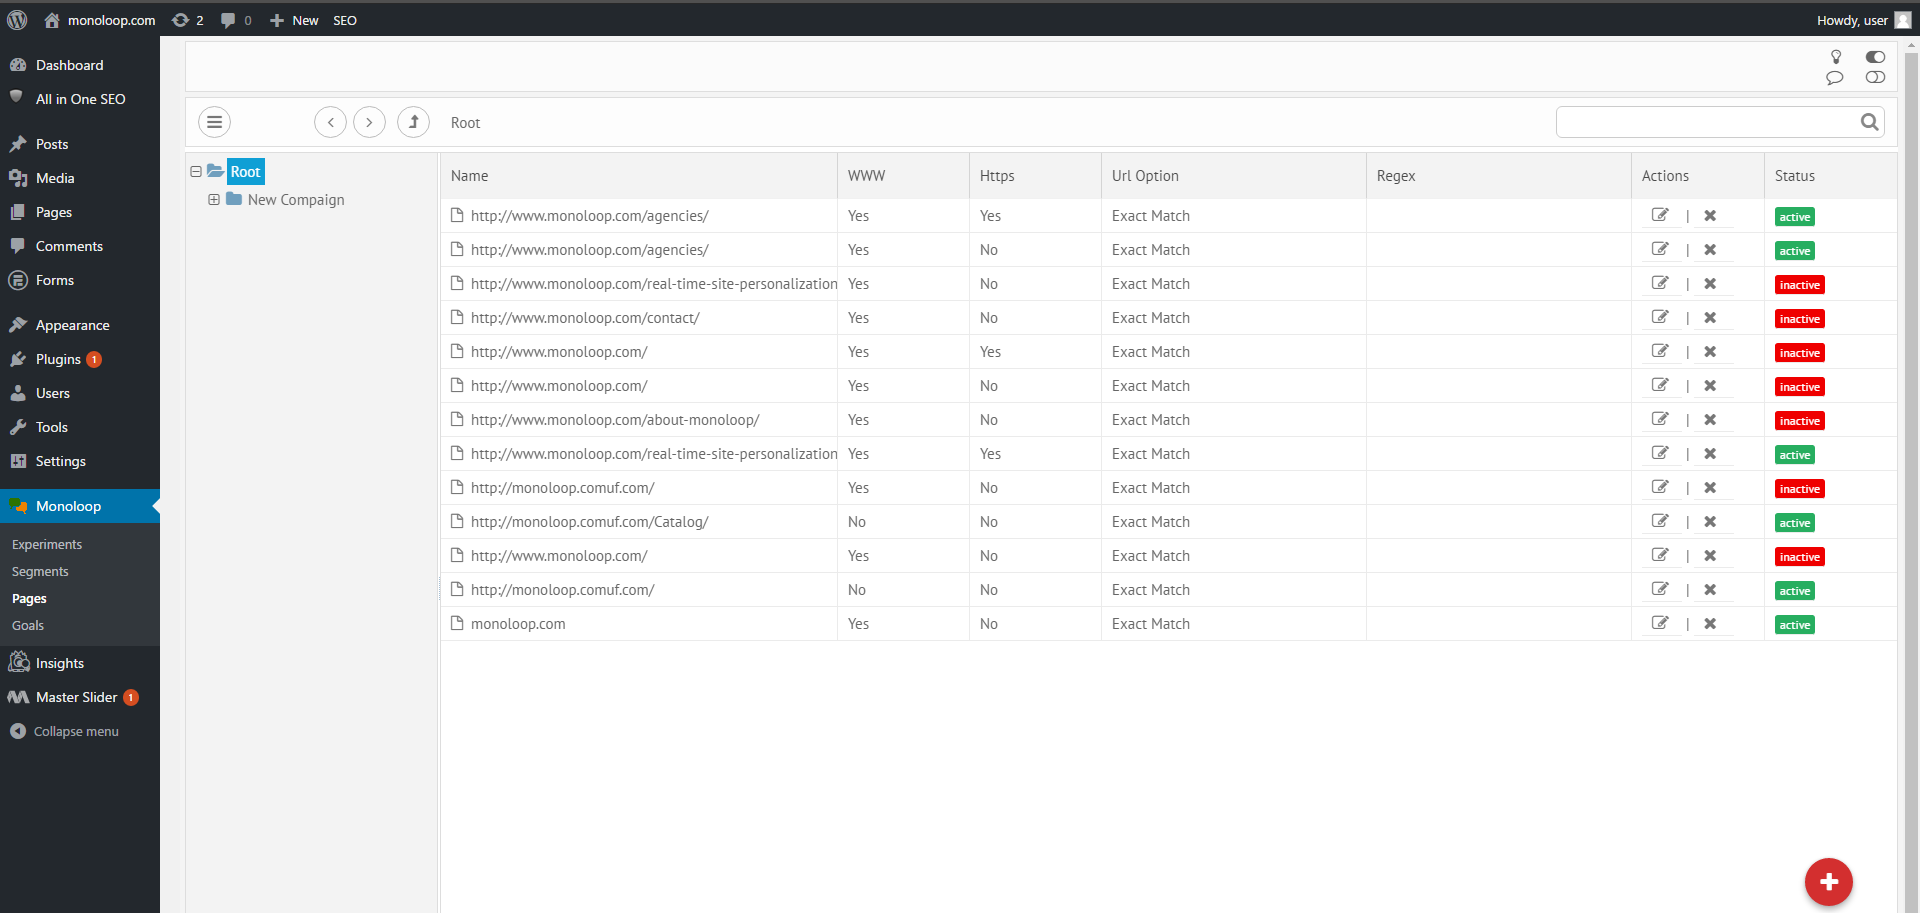 screenshot-9.png: Full overview of active and inactive pages on your site.